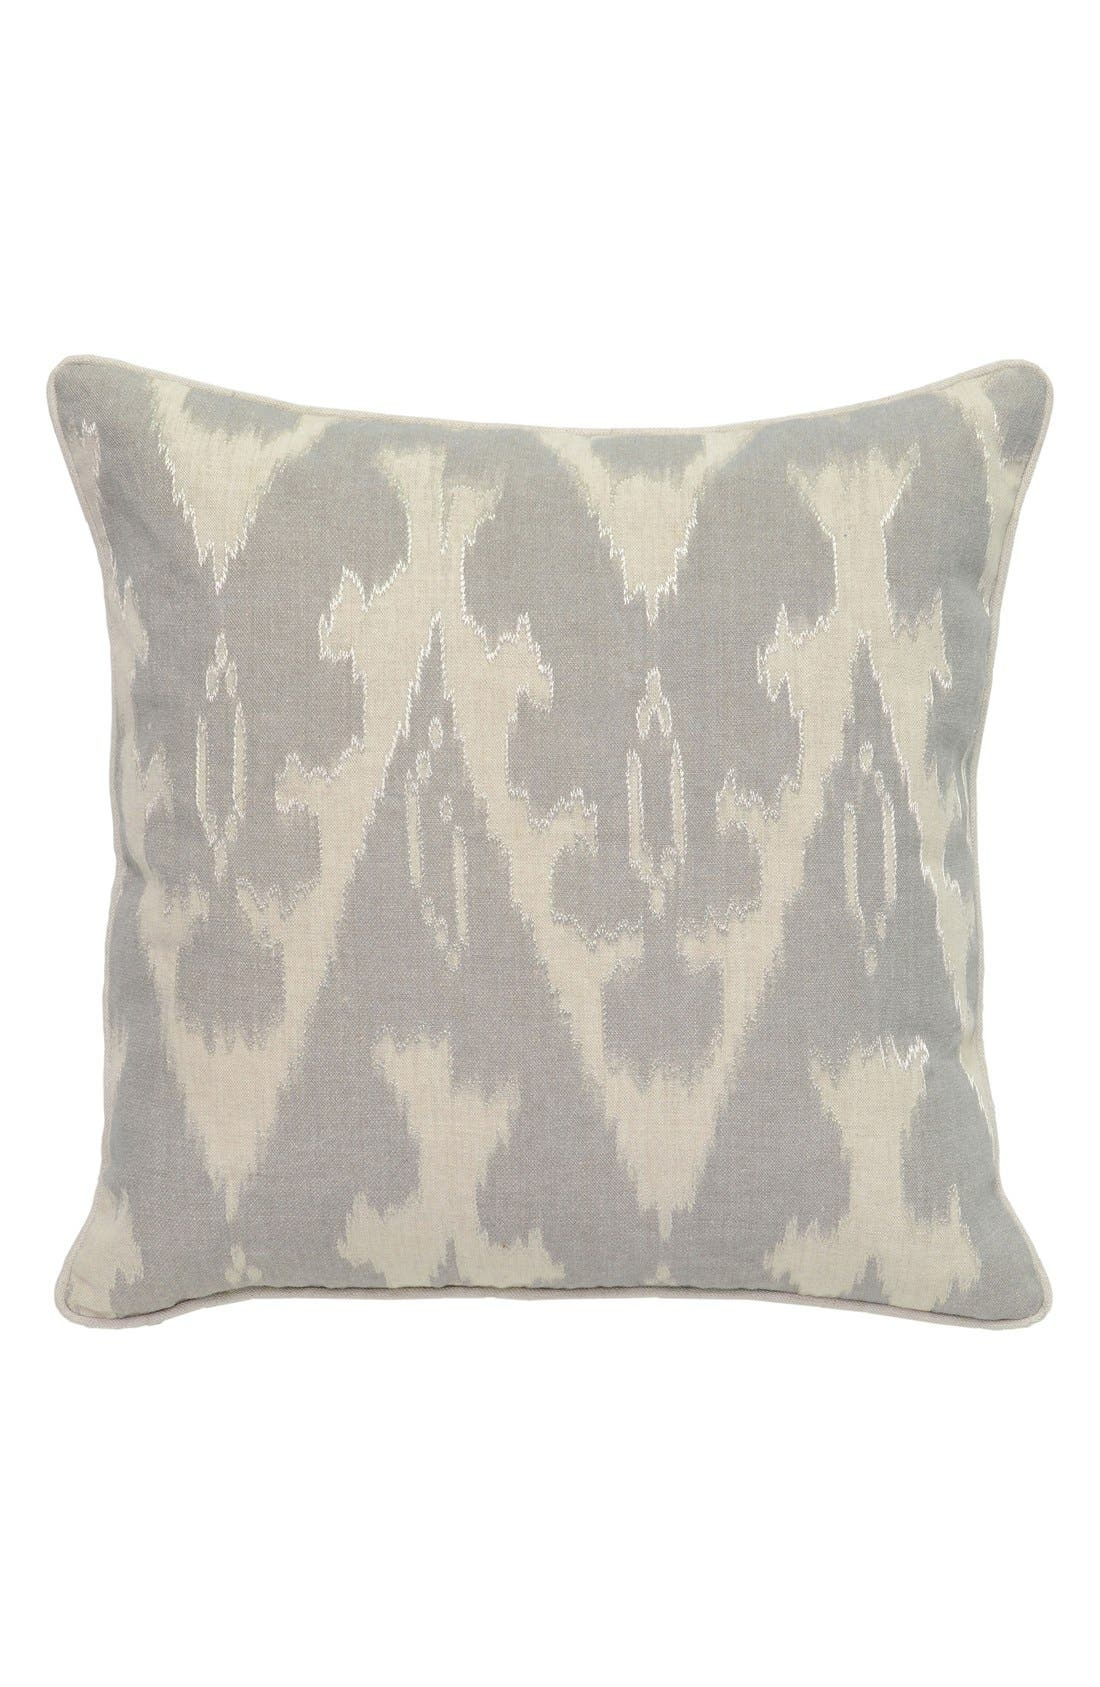 Fae Accent Pillow,                             Main thumbnail 1, color,                             Beige/ Grey